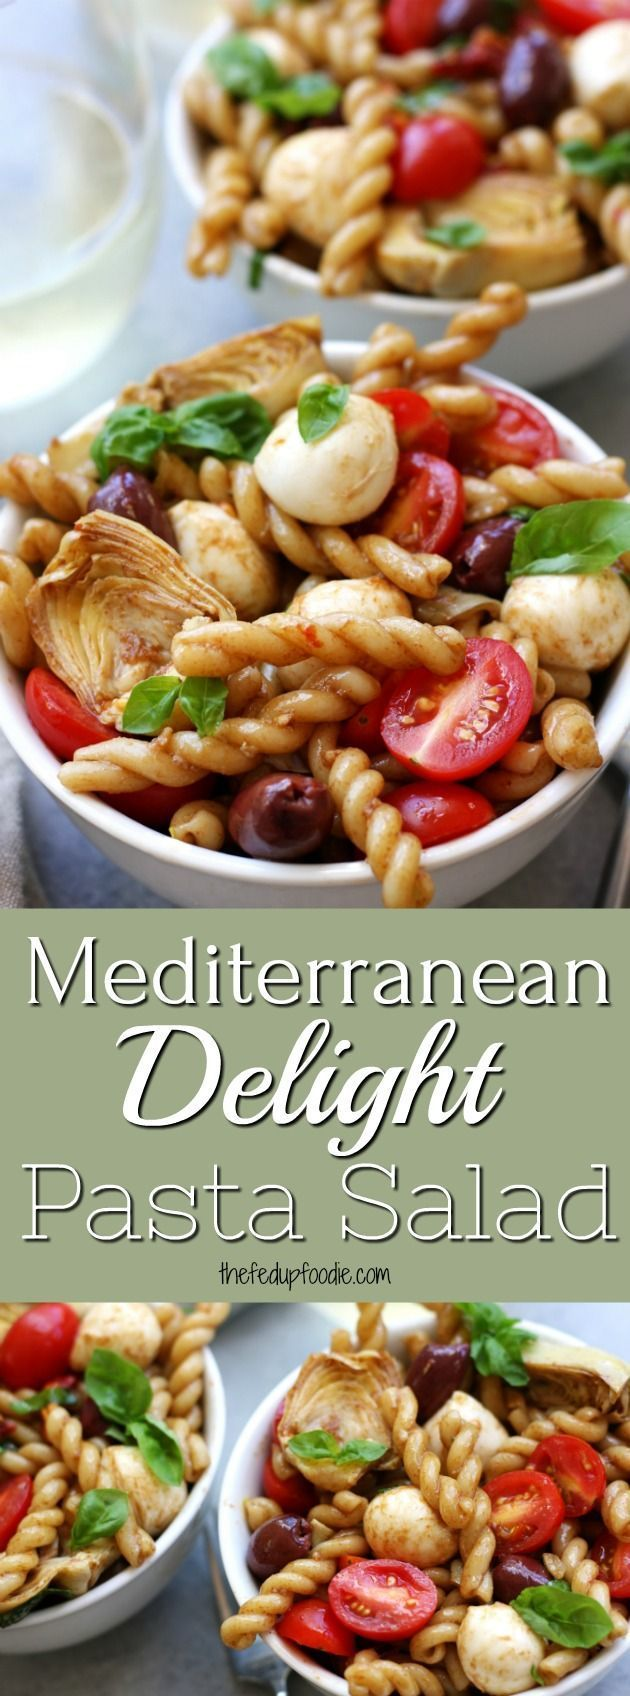 Mediterranean Delight Pasta Salad is an absolute crowd pleaser with a balsamic vinaigrette, creamy mozzarella, kalamata olives and artichoke hearts. A light meal that is great for diners or work lunches and only takes 20 minutes. Stopping at one bowl is almost impossible.